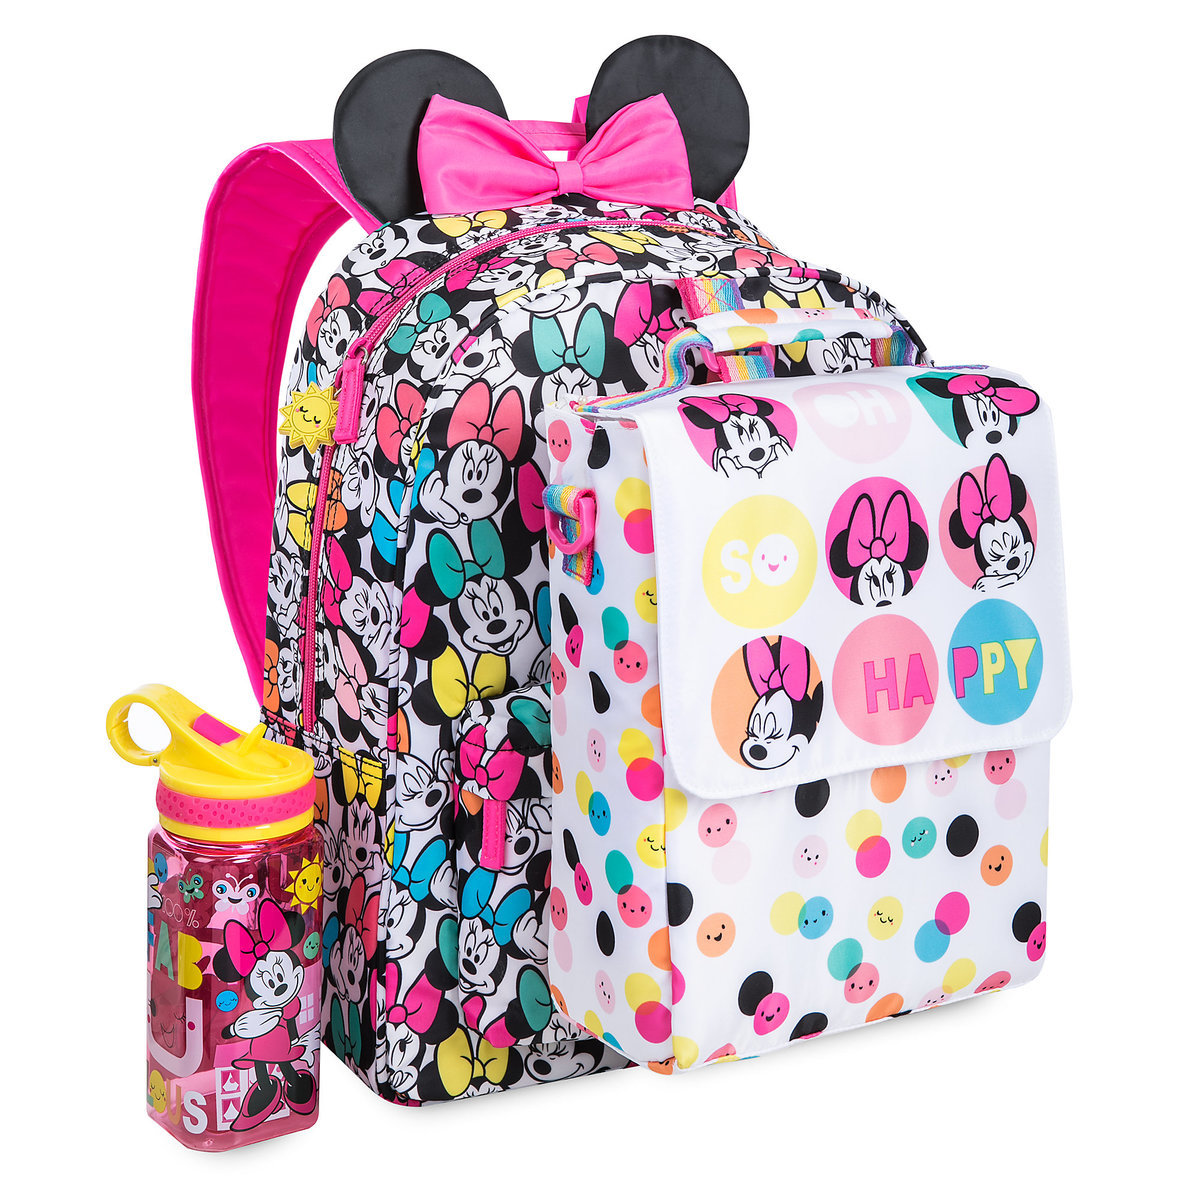 31aaec236d6 Product Image of Minnie Mouse Back-to-School Collection   1